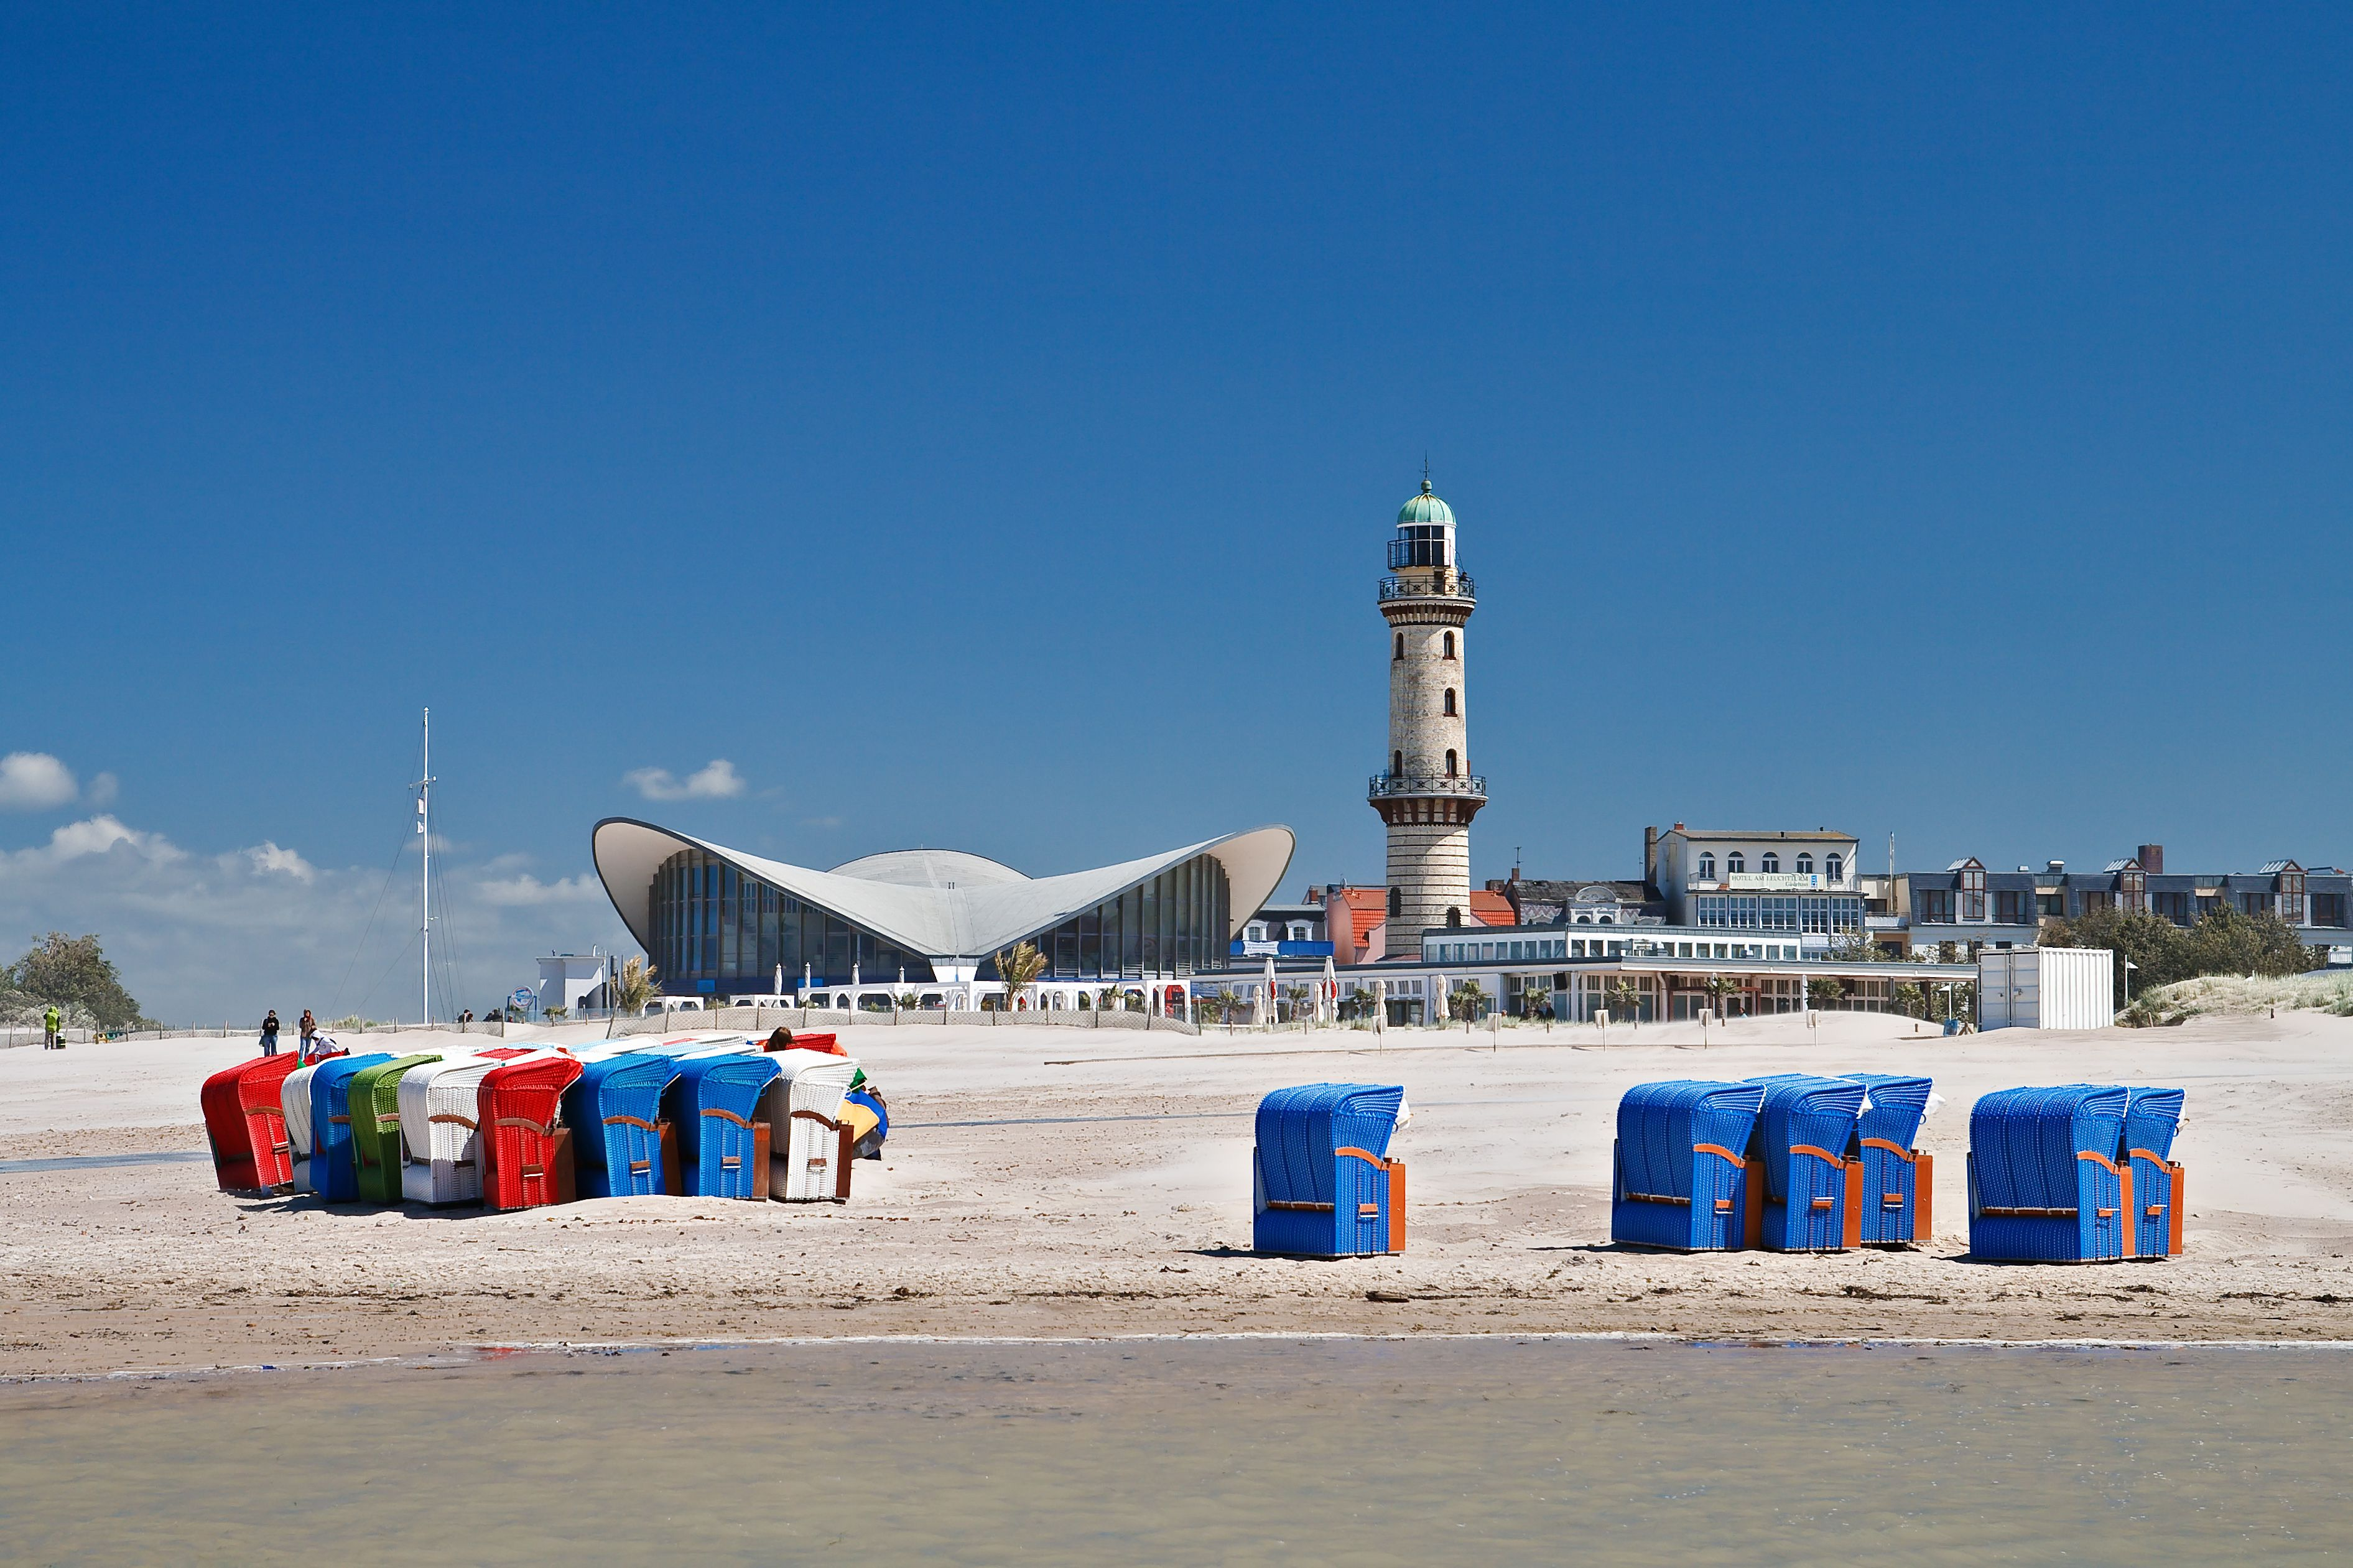 Lighthouse against blue sky at beach in Warnemnde, Germany